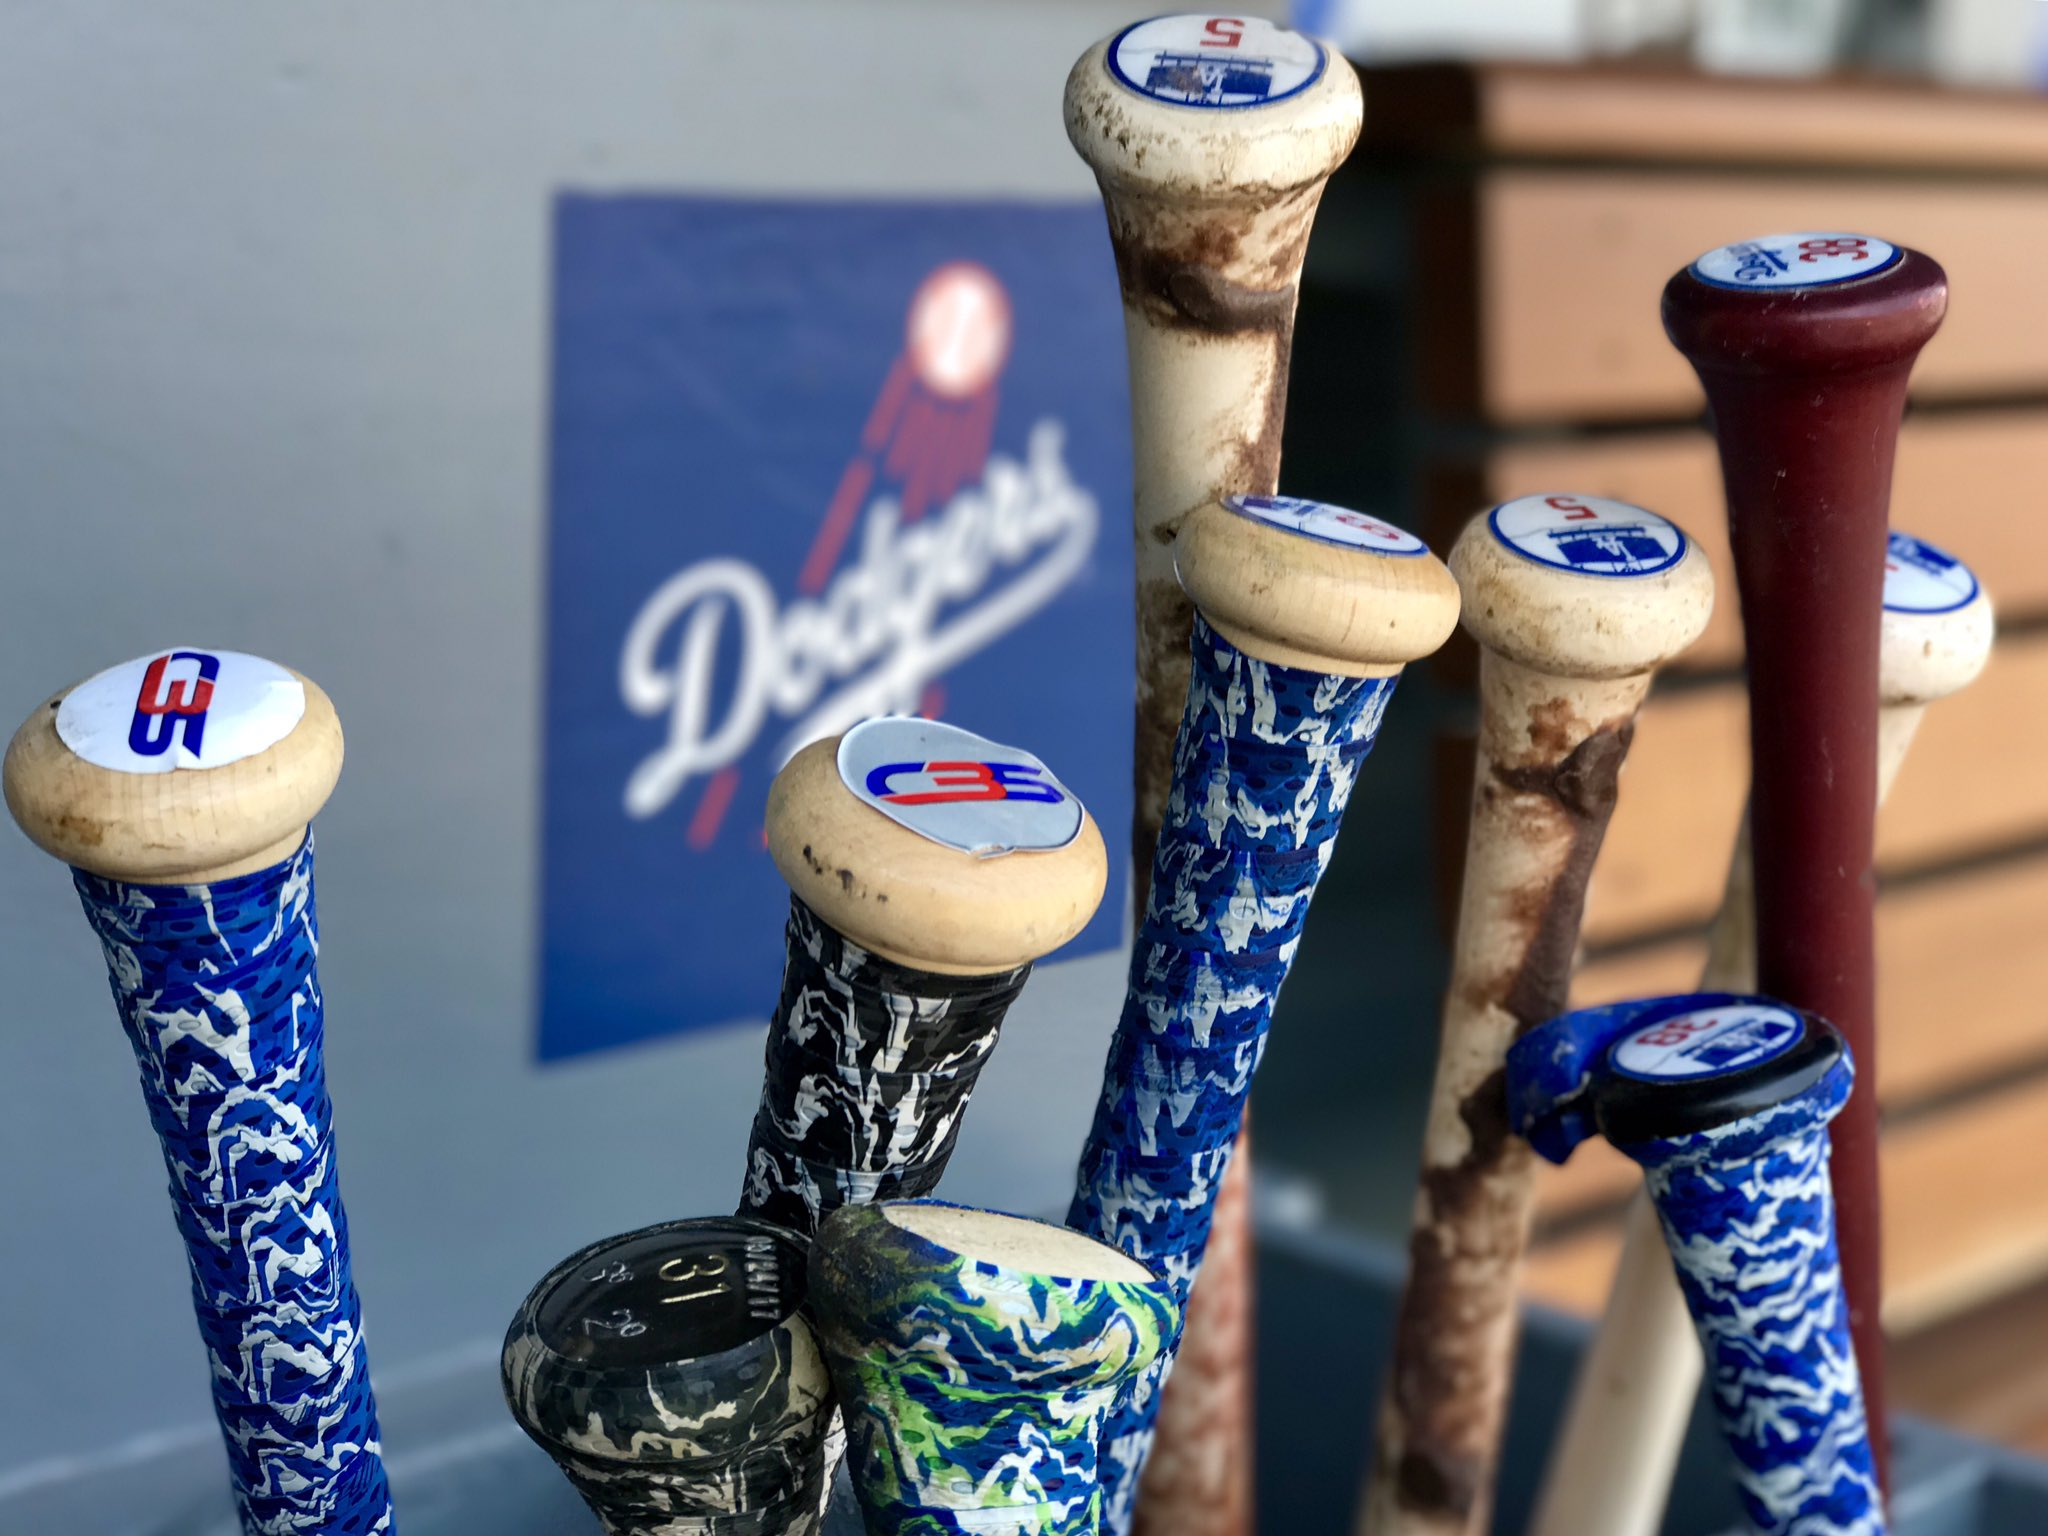 It may be hot outside, but our bats are hotter. �� #LetsGoDodgers https://t.co/fa944CmUkP